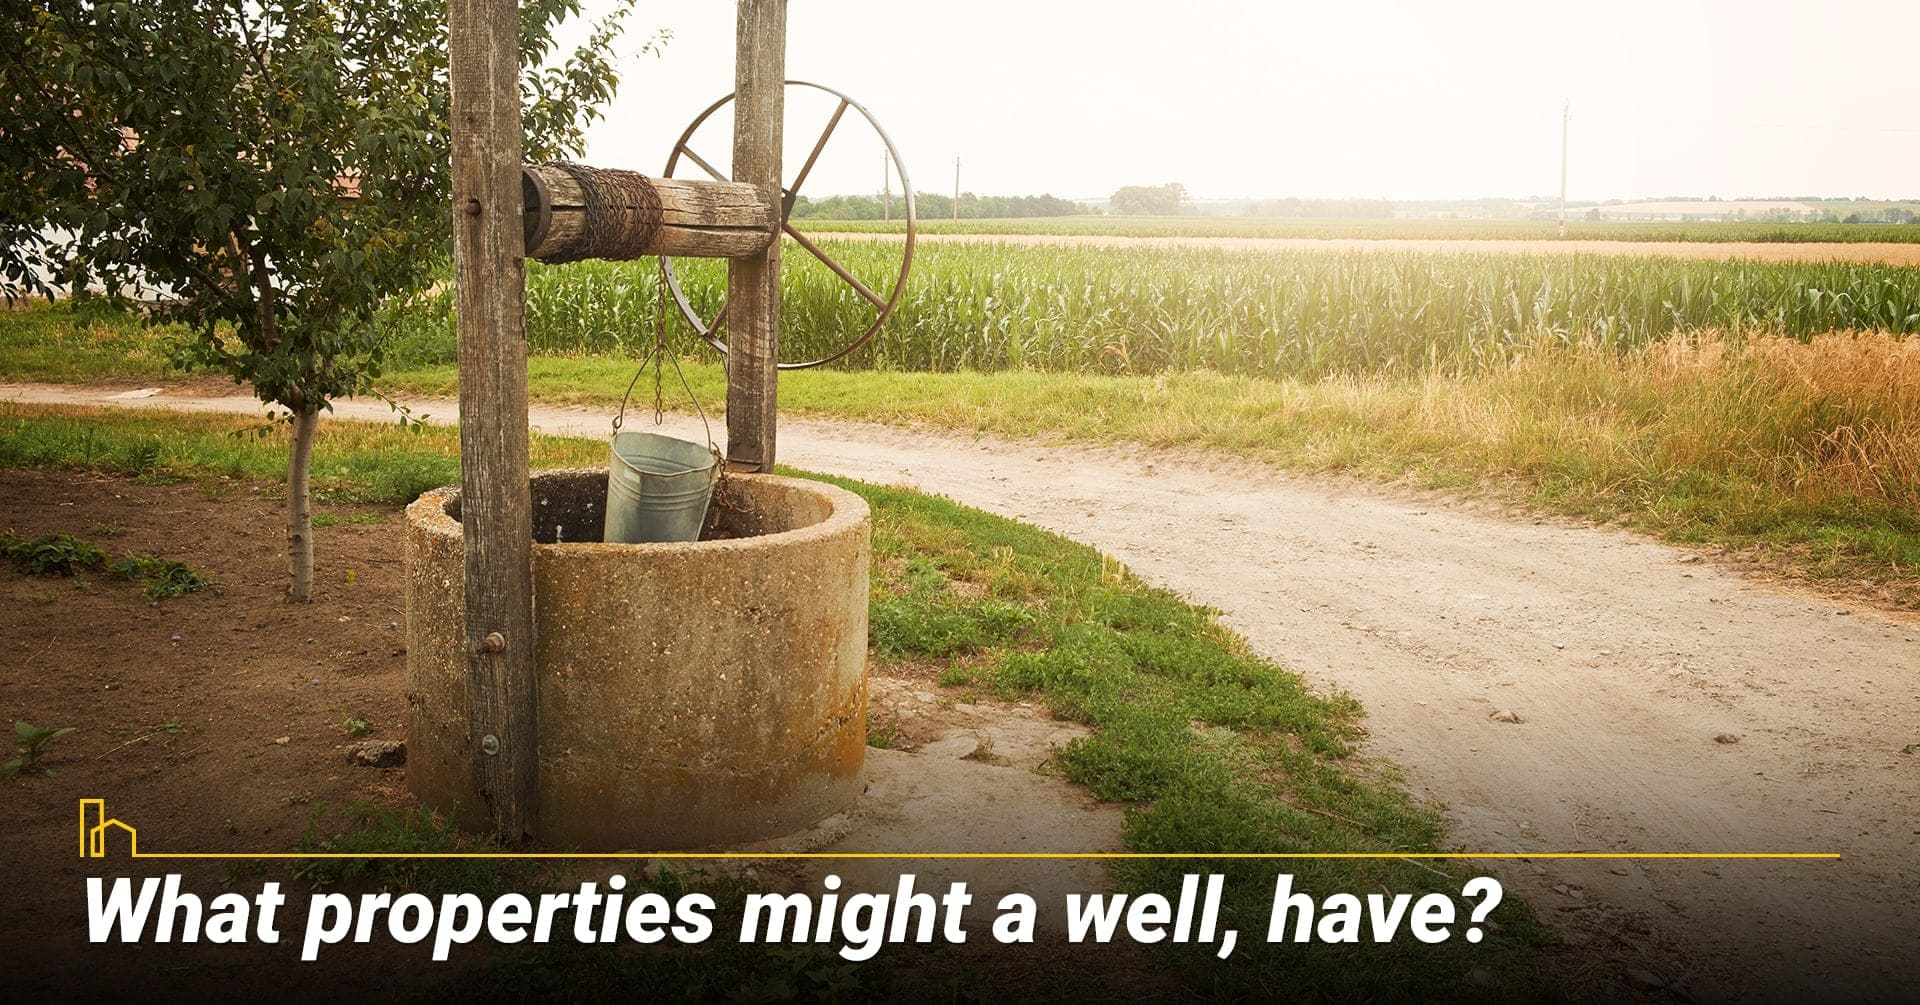 What properties might a well, have? Wells are typically located in rural areas